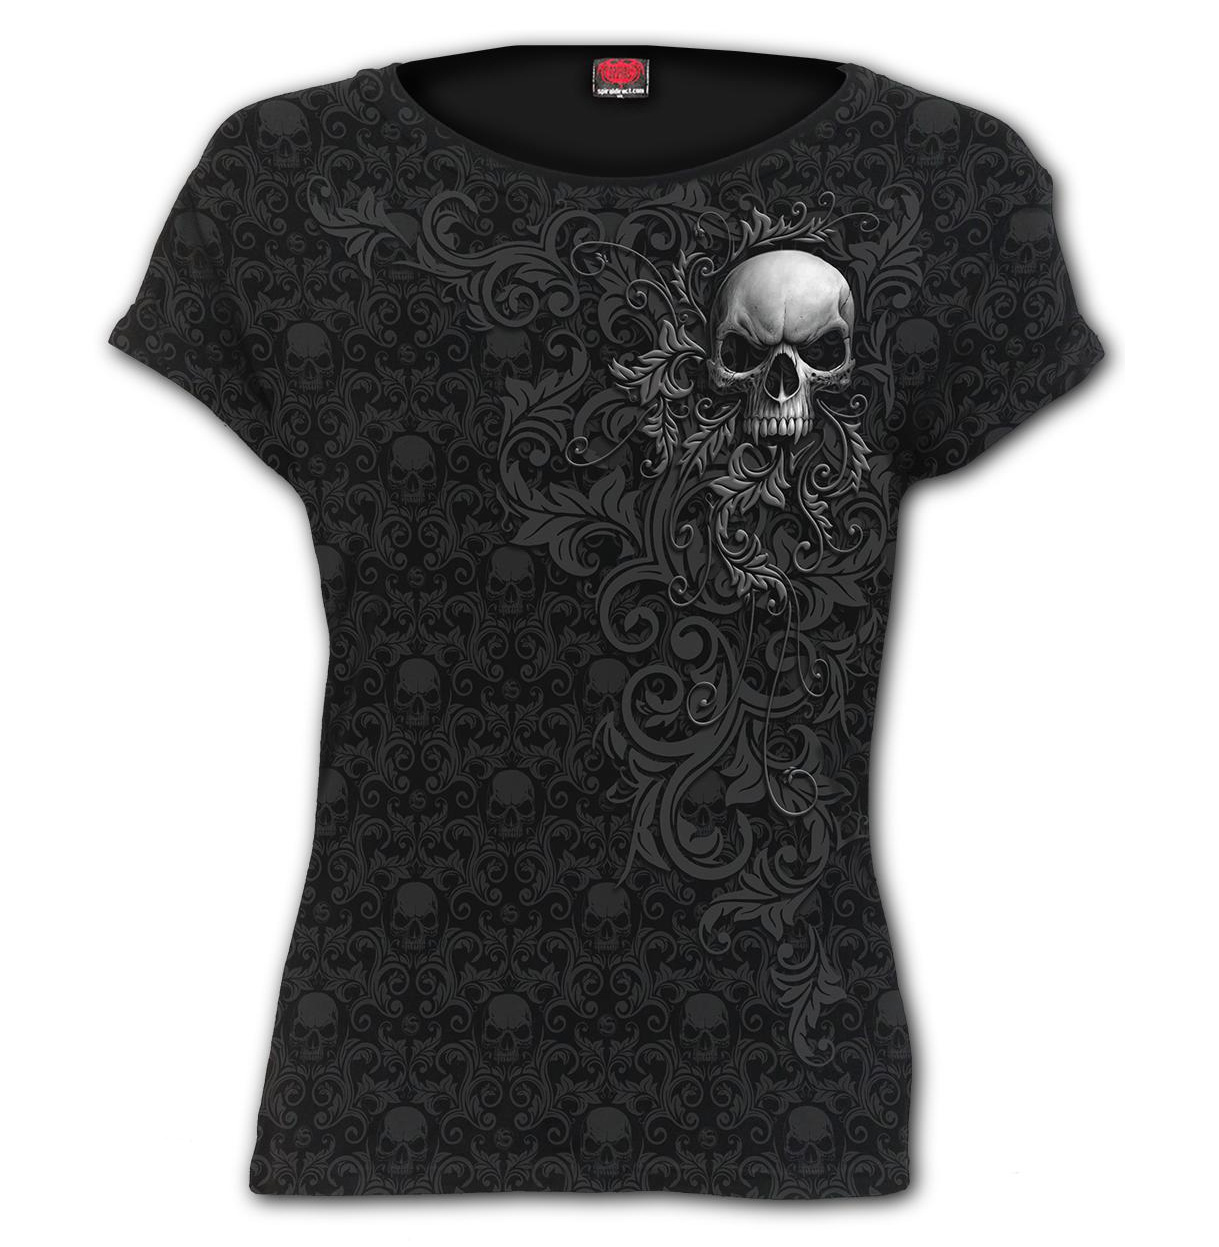 Spiral-Direct-Ladies-Black-Gothic-SKULL-SCROLL-Impression-T-Shirt-Top-All-Sizes thumbnail 7